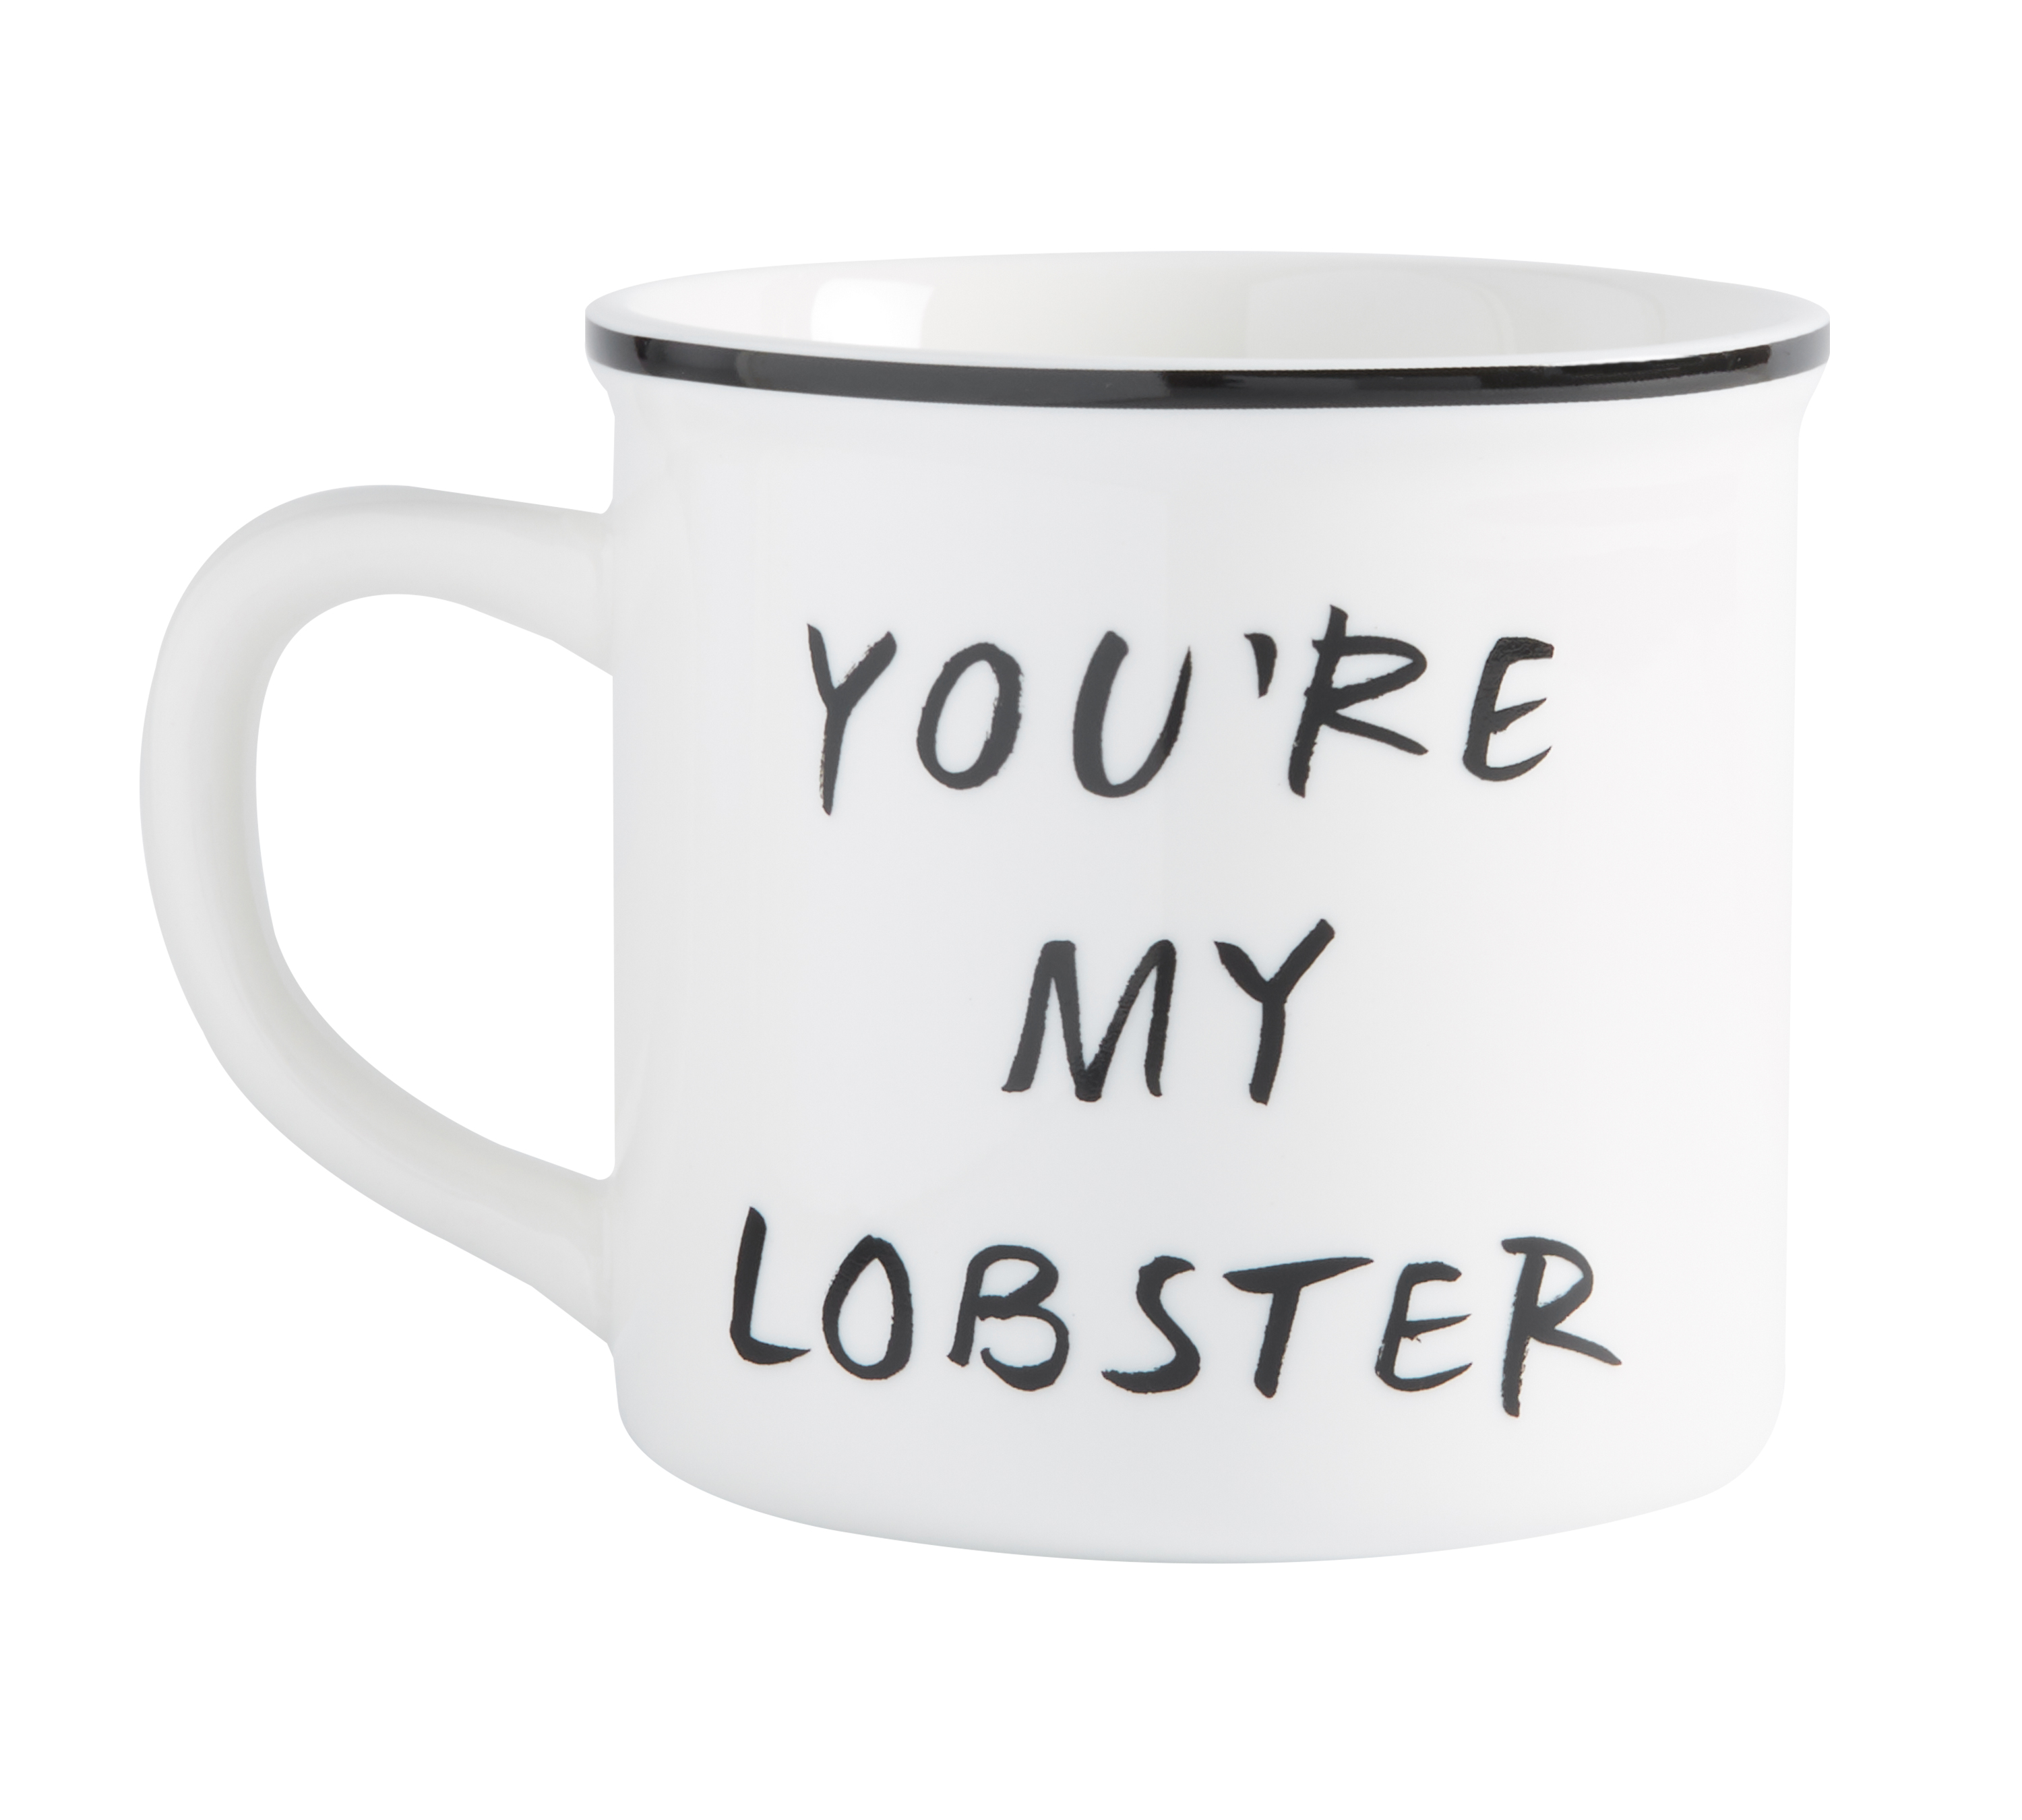 'You're My Lobster' mug